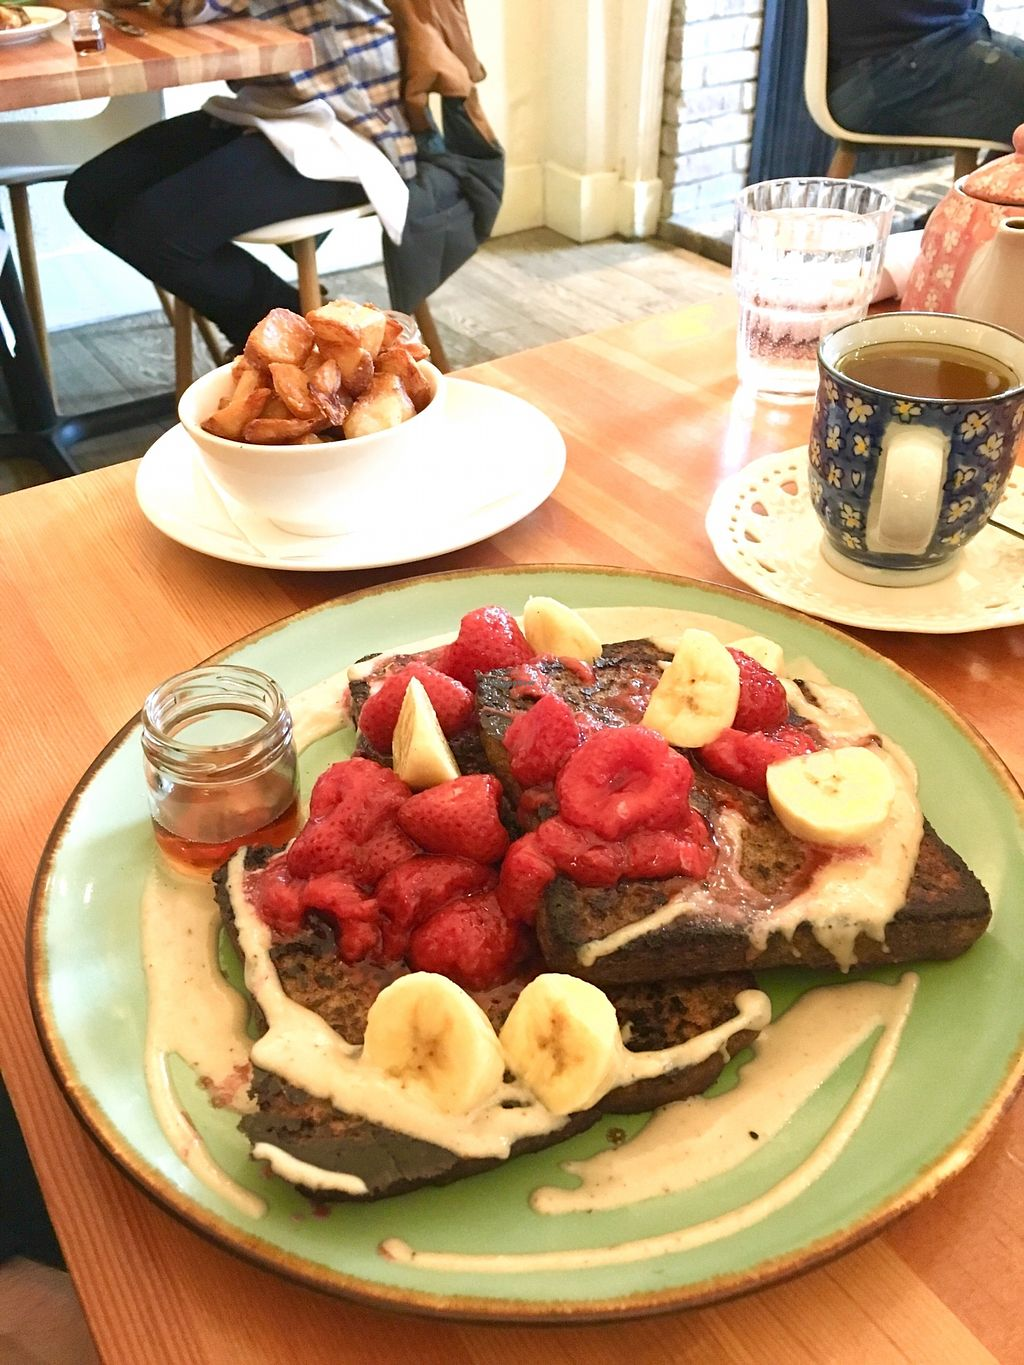 """Photo of Heirloom Vegetarian  by <a href=""""/members/profile/vegan%20frog"""">vegan frog</a> <br/>Gluten free French toast <br/> April 12, 2018  - <a href='/contact/abuse/image/34325/384315'>Report</a>"""